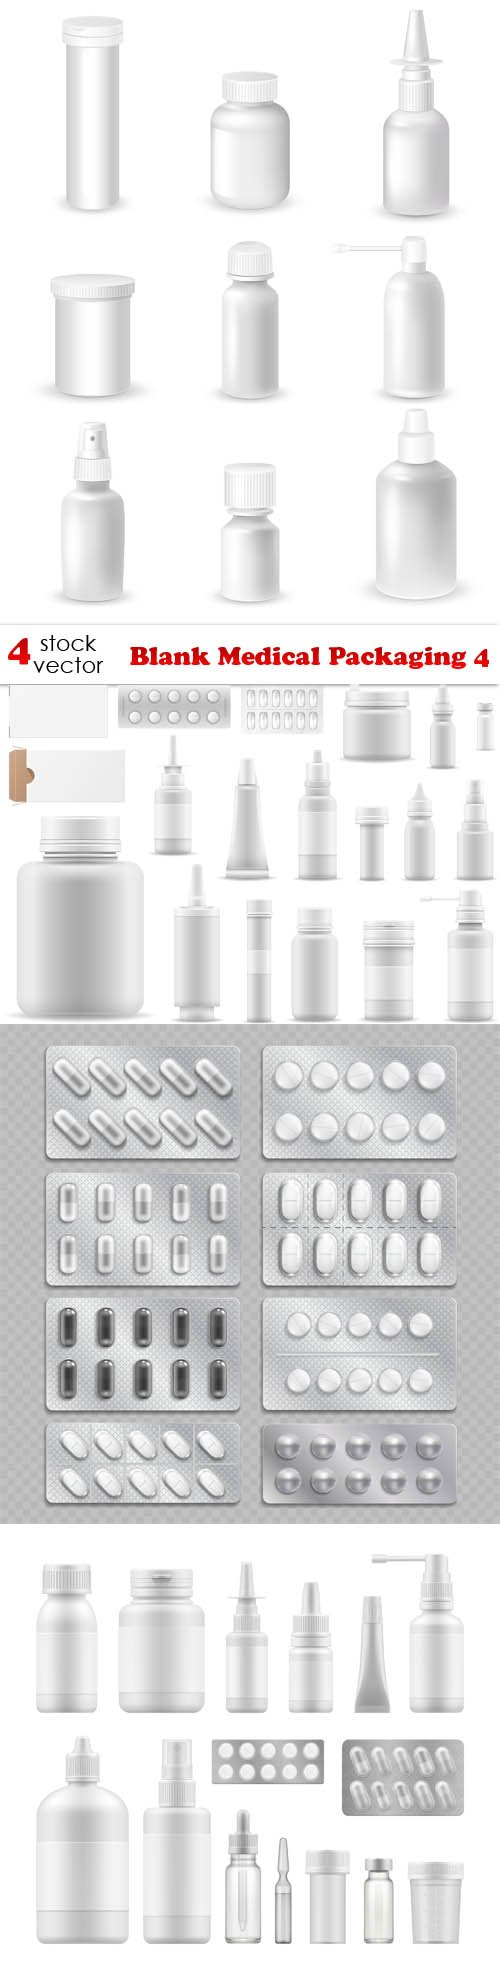 Vectors - Blank Medical Packaging 4